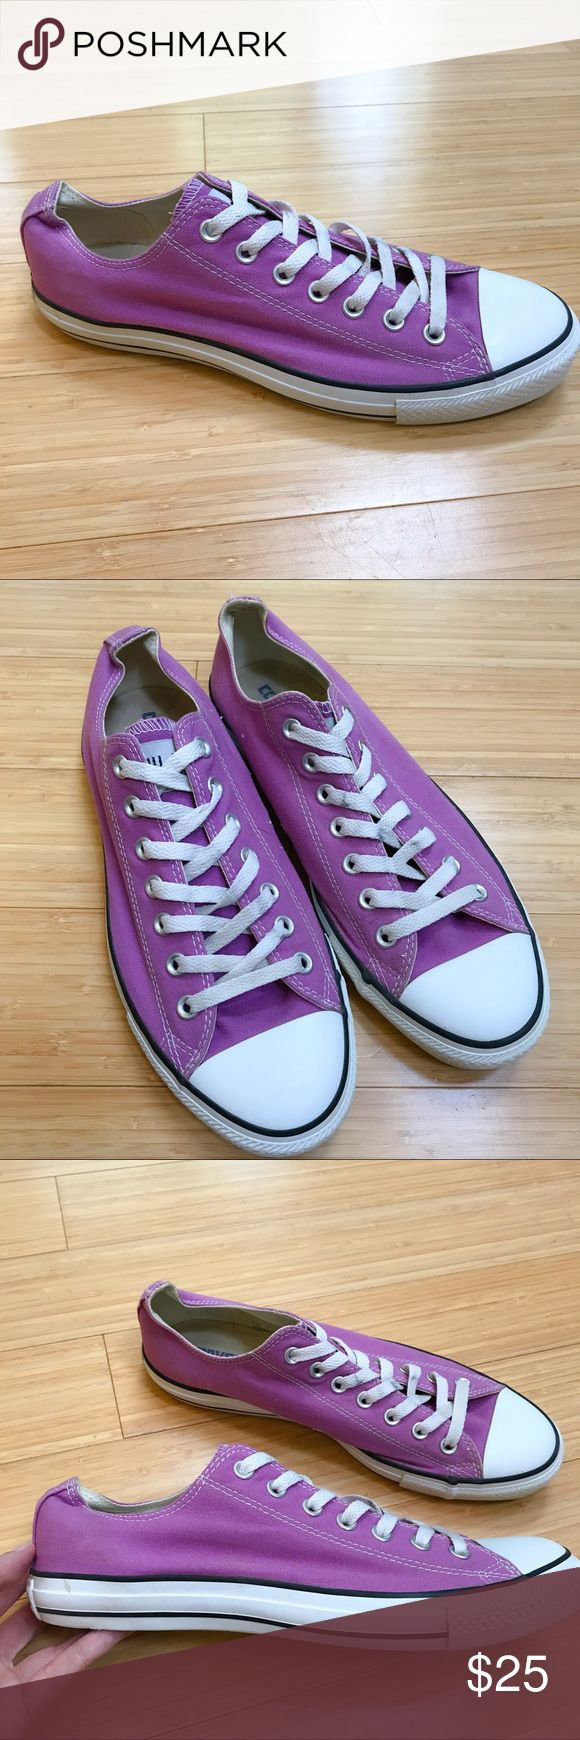 CONVERSE All Star canvas Chucks sneakers, 12. Great pair of purple and white Converse brand All Star sneakers. These are women's size 12, men's size 10. Not brand new but good overall condition. The laces are no longer bright white and the bottom sole and foot bed is a little dirty, not bad. Super cute color! Good condition. Converse Shoes Sneakers